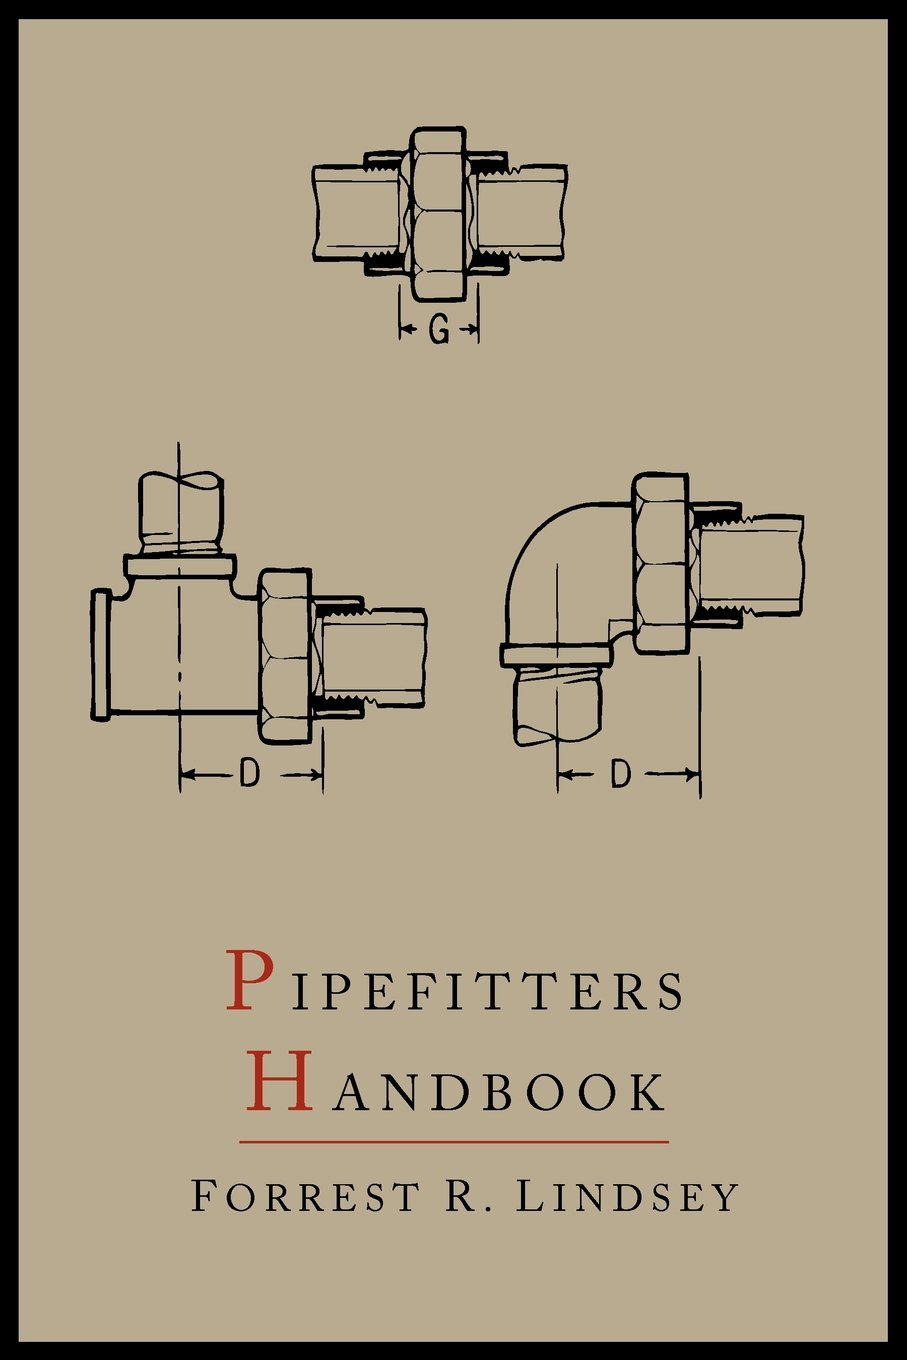 Pipefitters Handbook Second Expanded Edition Forrest Piping Layout Pictures R Lindsey 9781614273295 Books